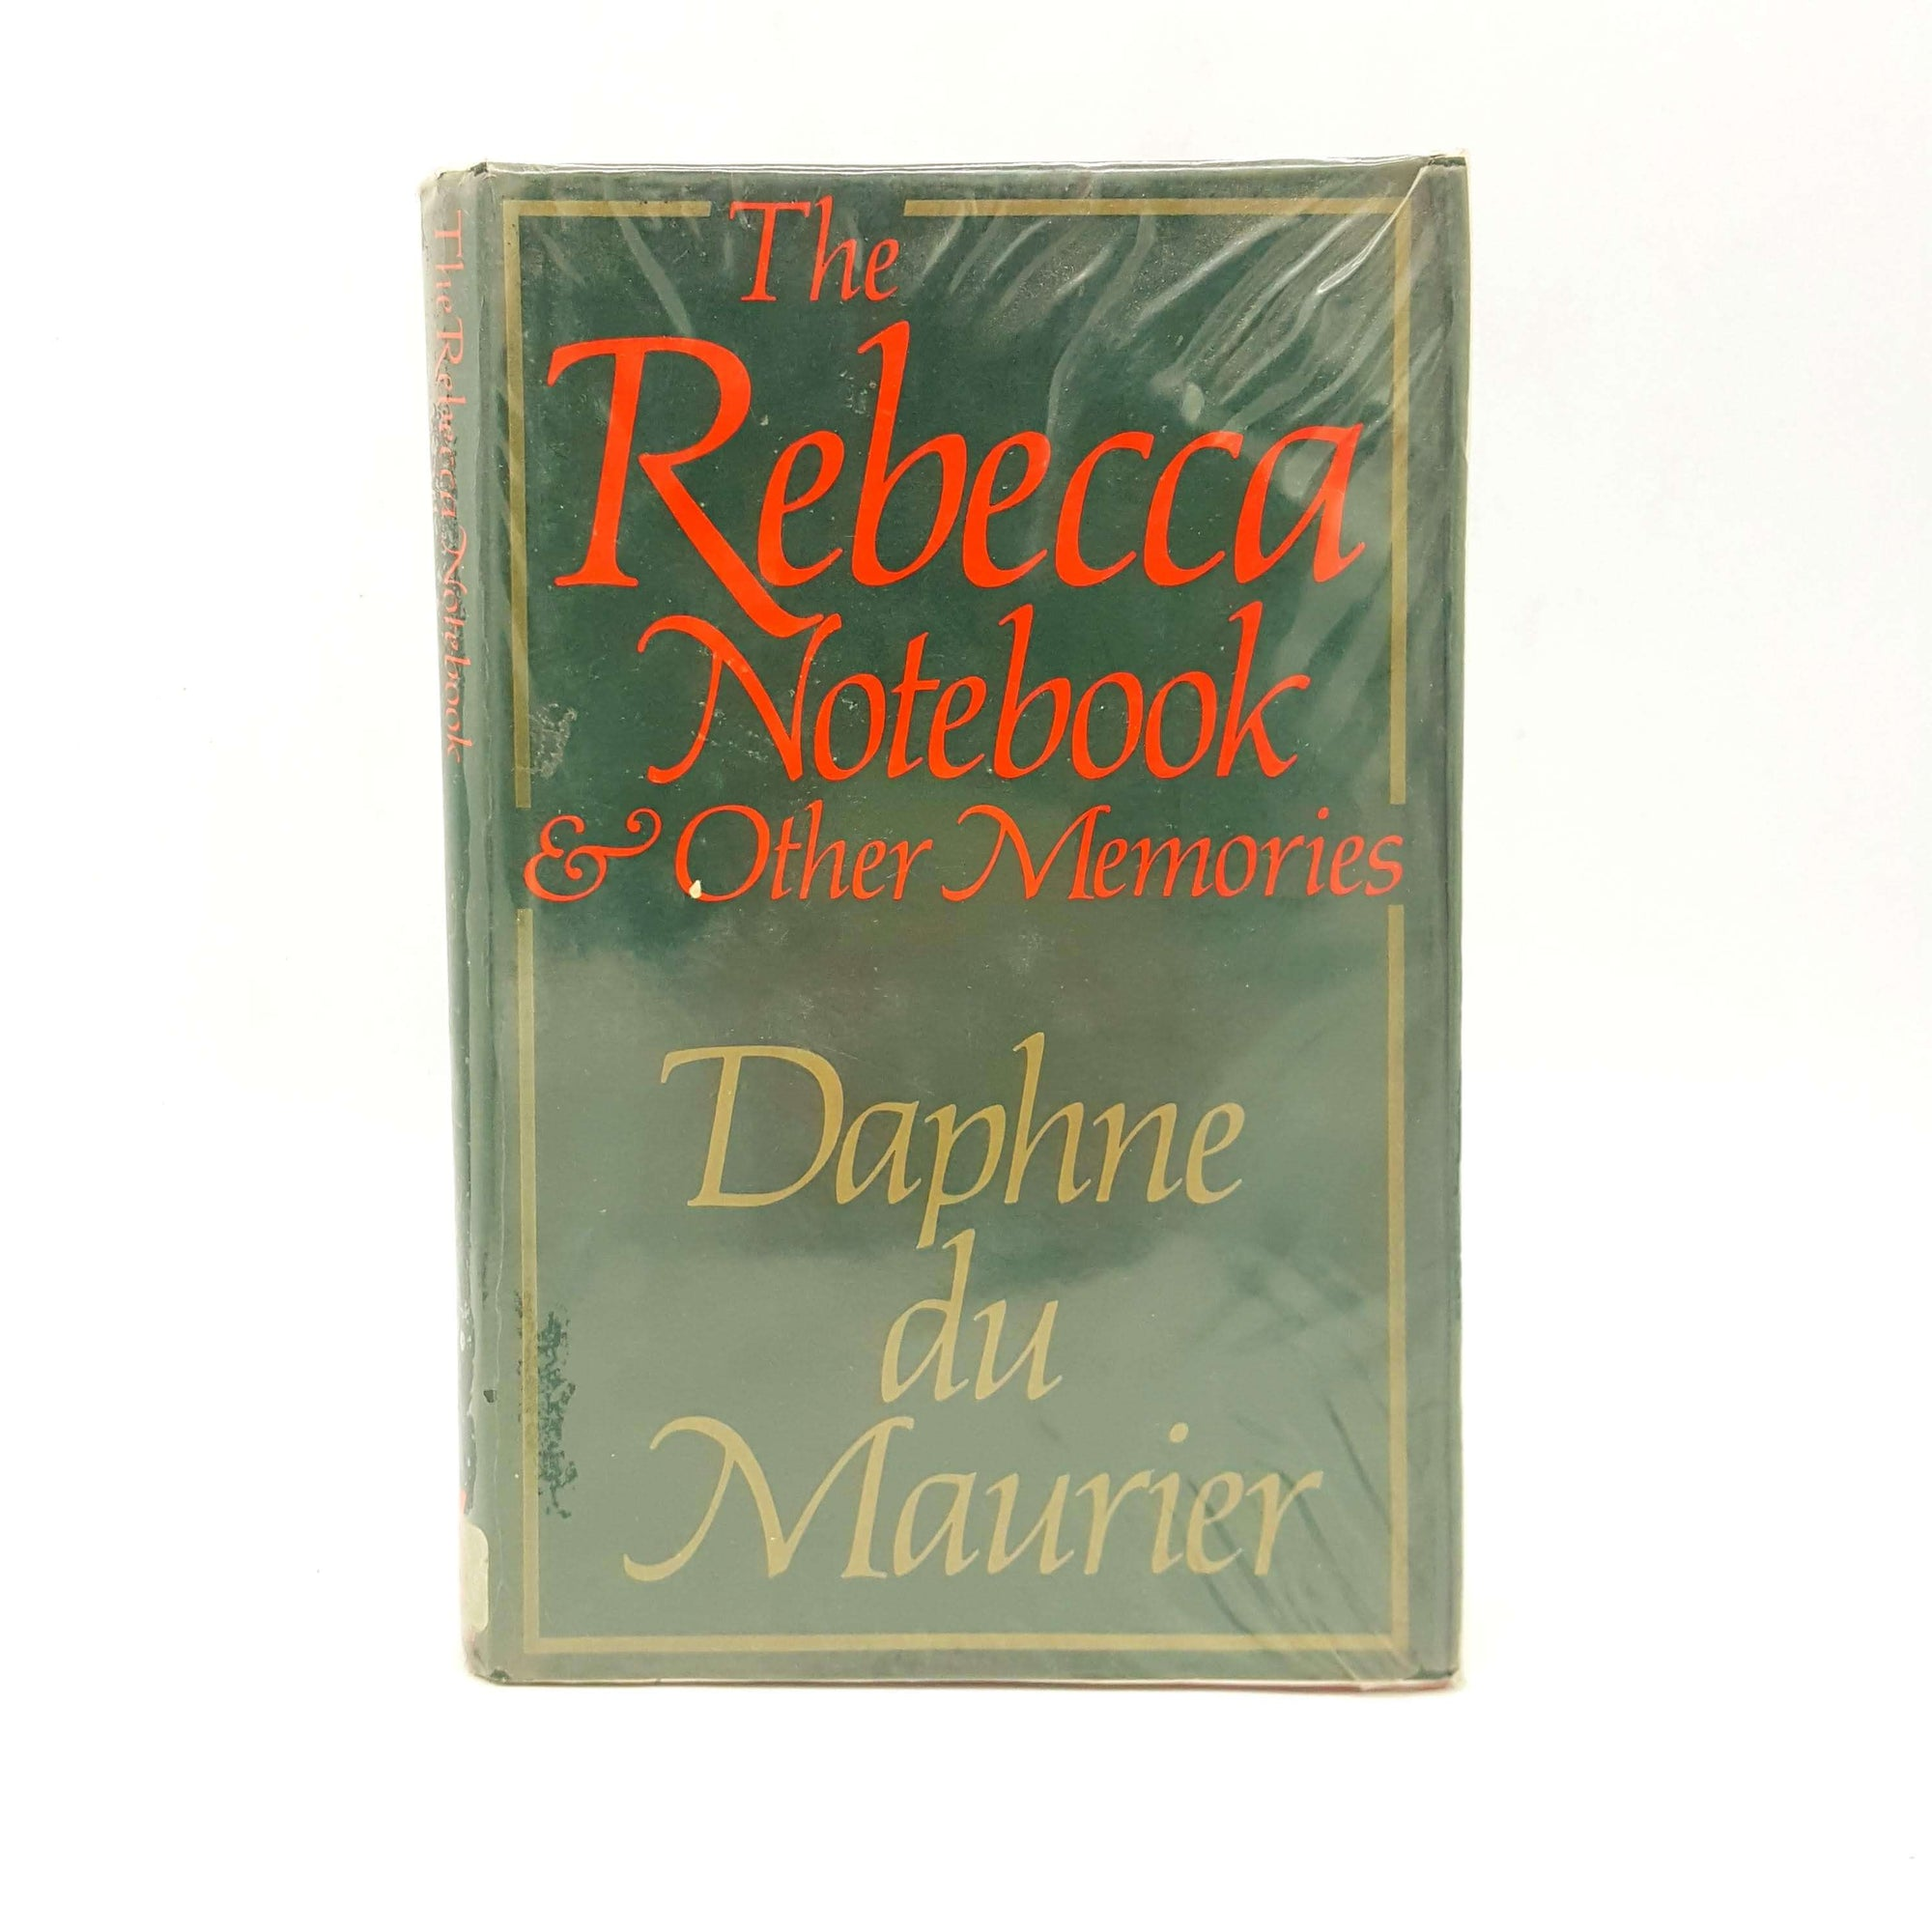 Daphne du Maurier's The Rebecca Notebook & Other Memories Country House Library